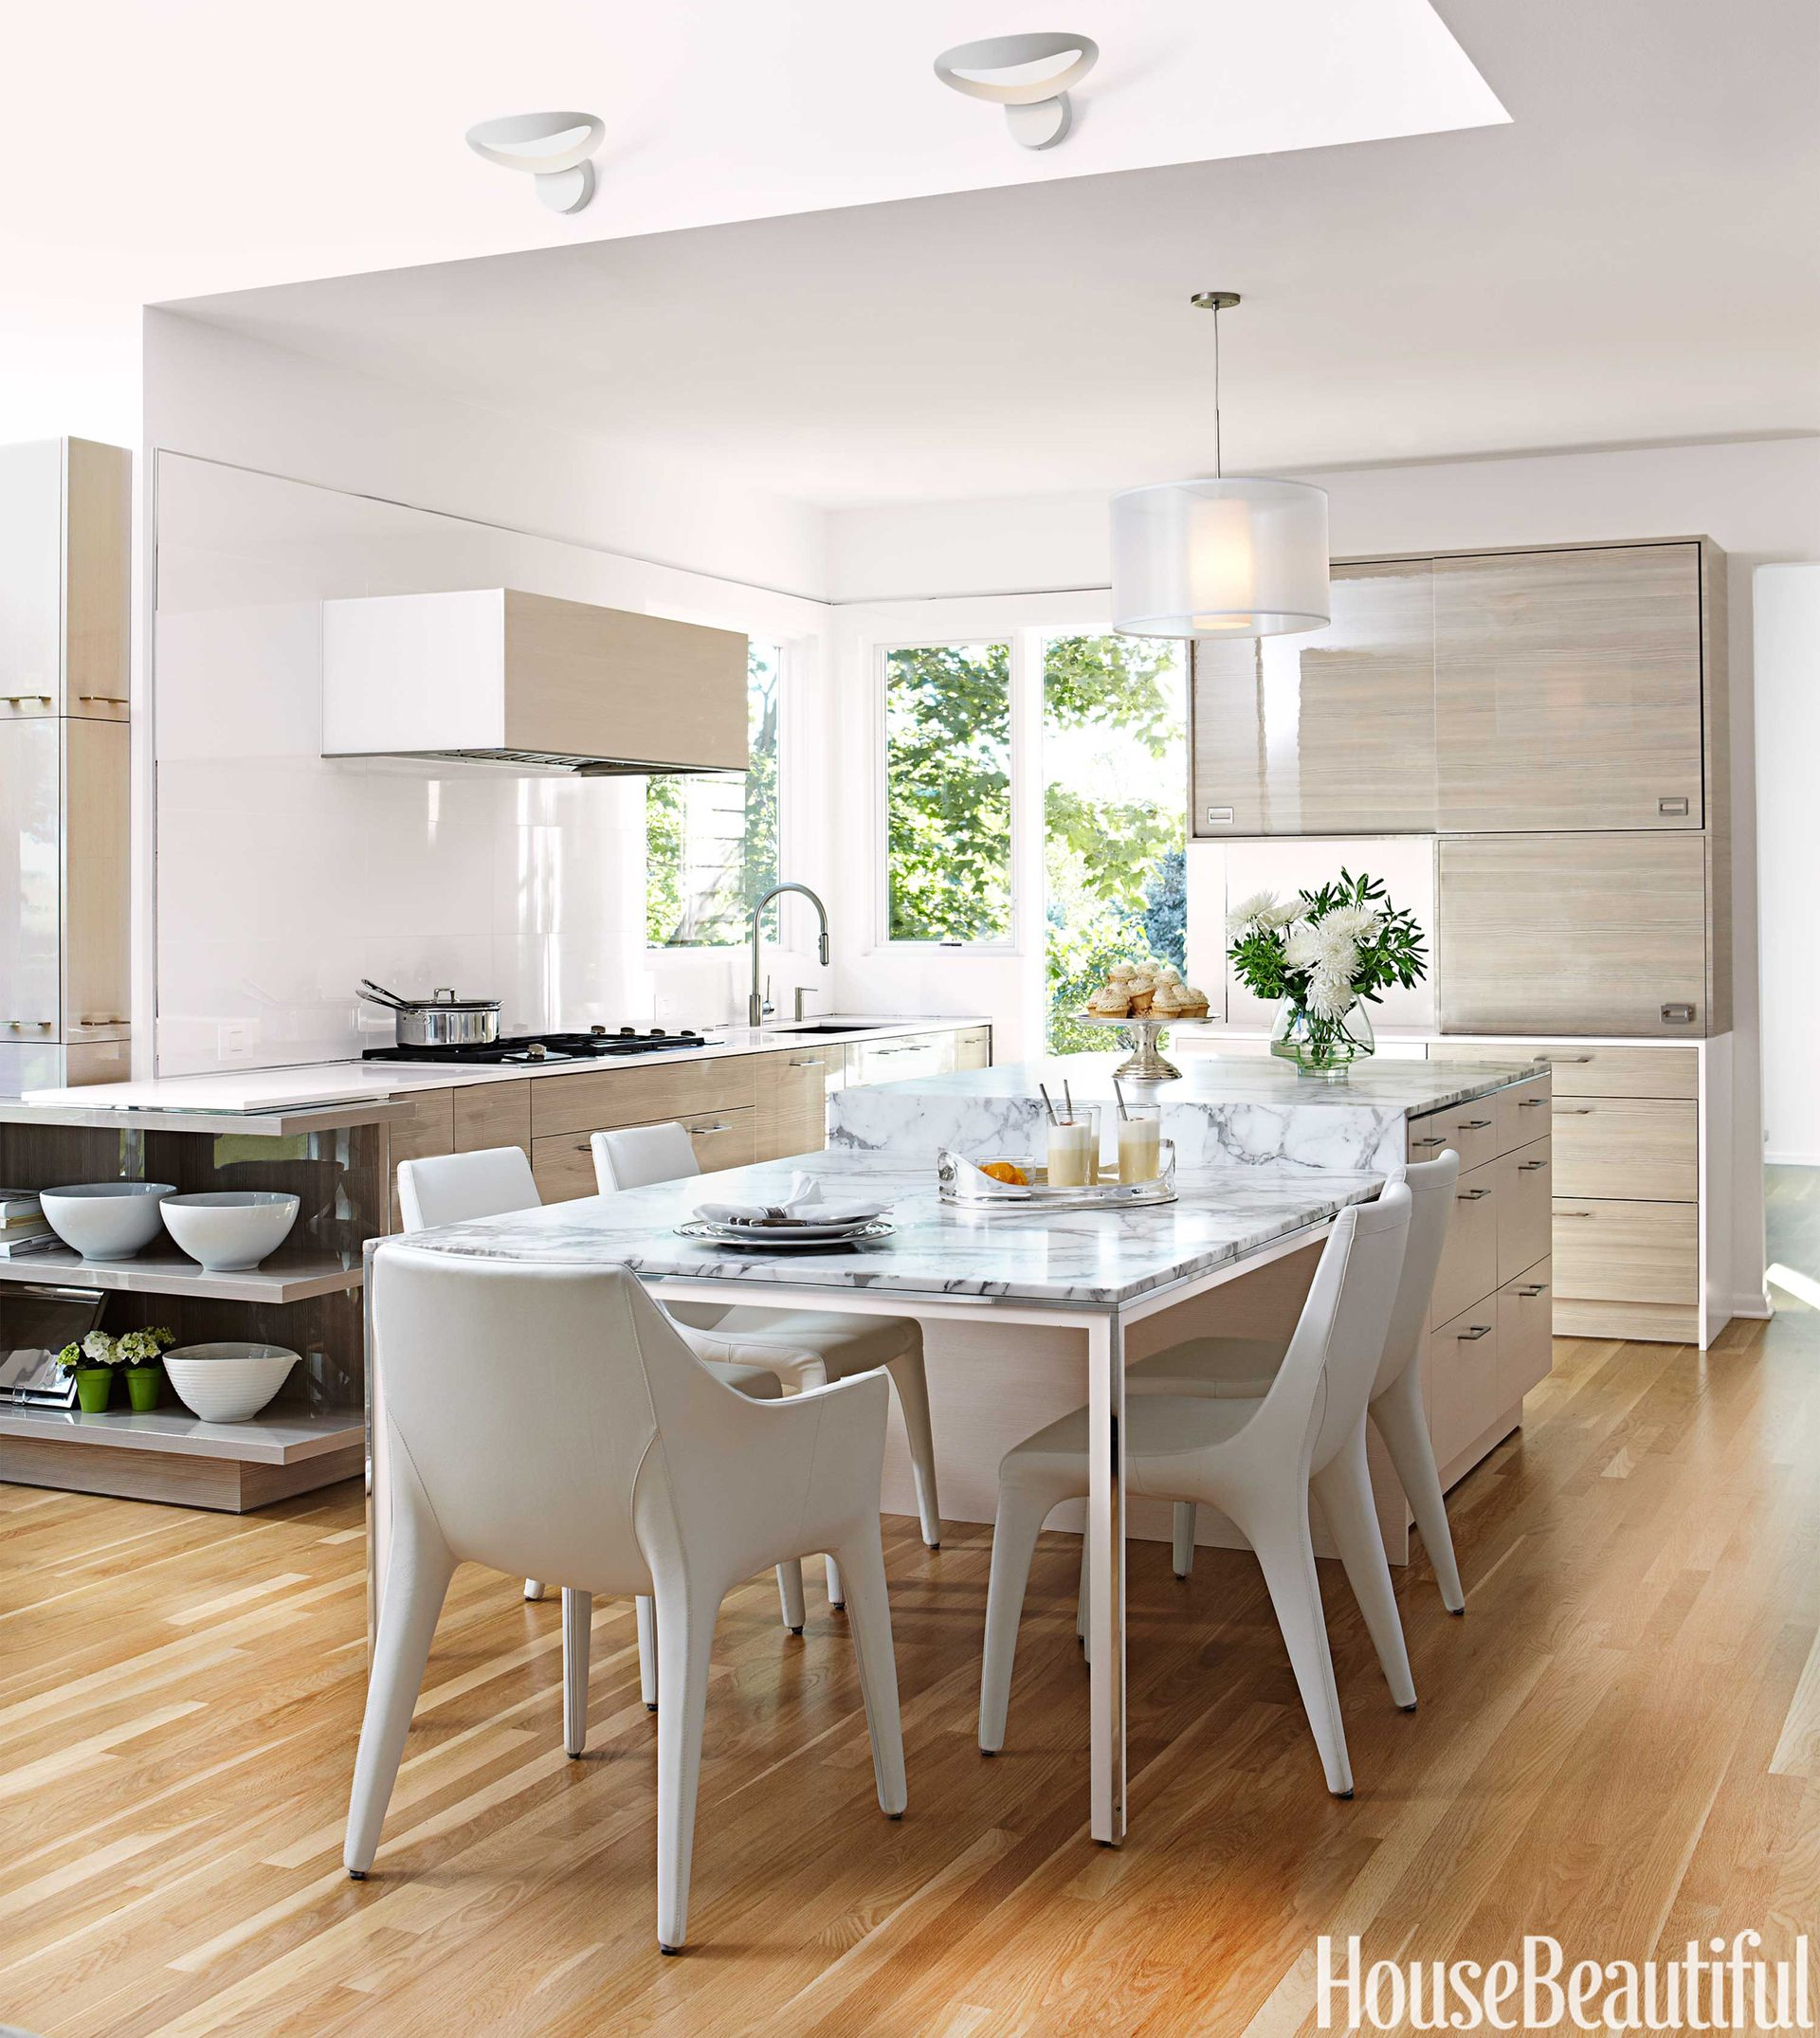 30 Brilliant Kitchen Island Ideas That Make A Statement: 8 Smart Solutions If You Don't Have A Dining Room